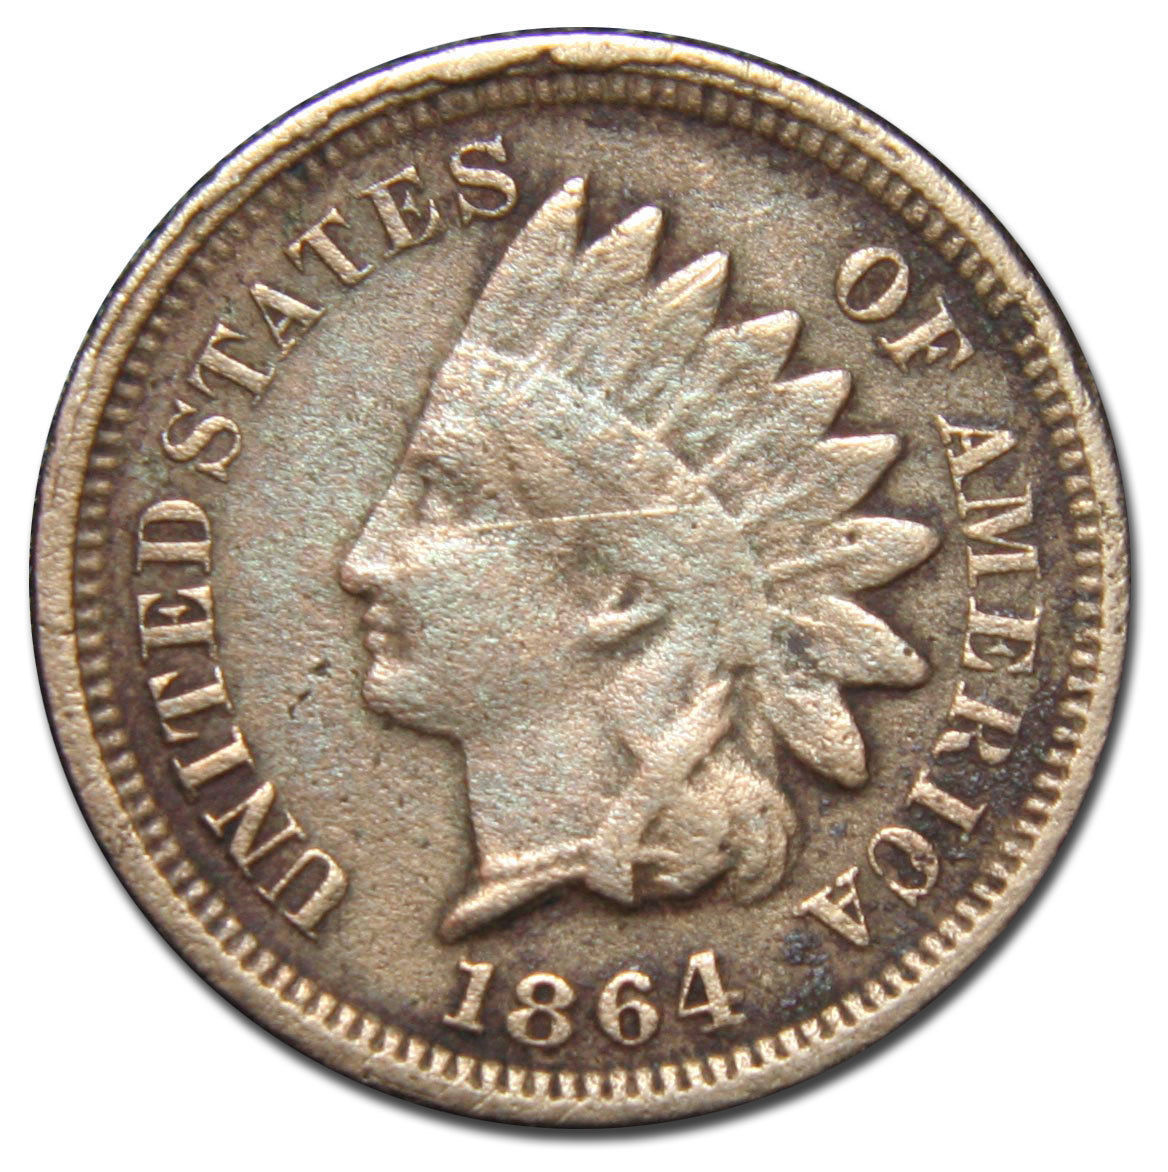 1864 Copper Nickel Indian Head Penny / Cent Coin Lot# MZ 2760